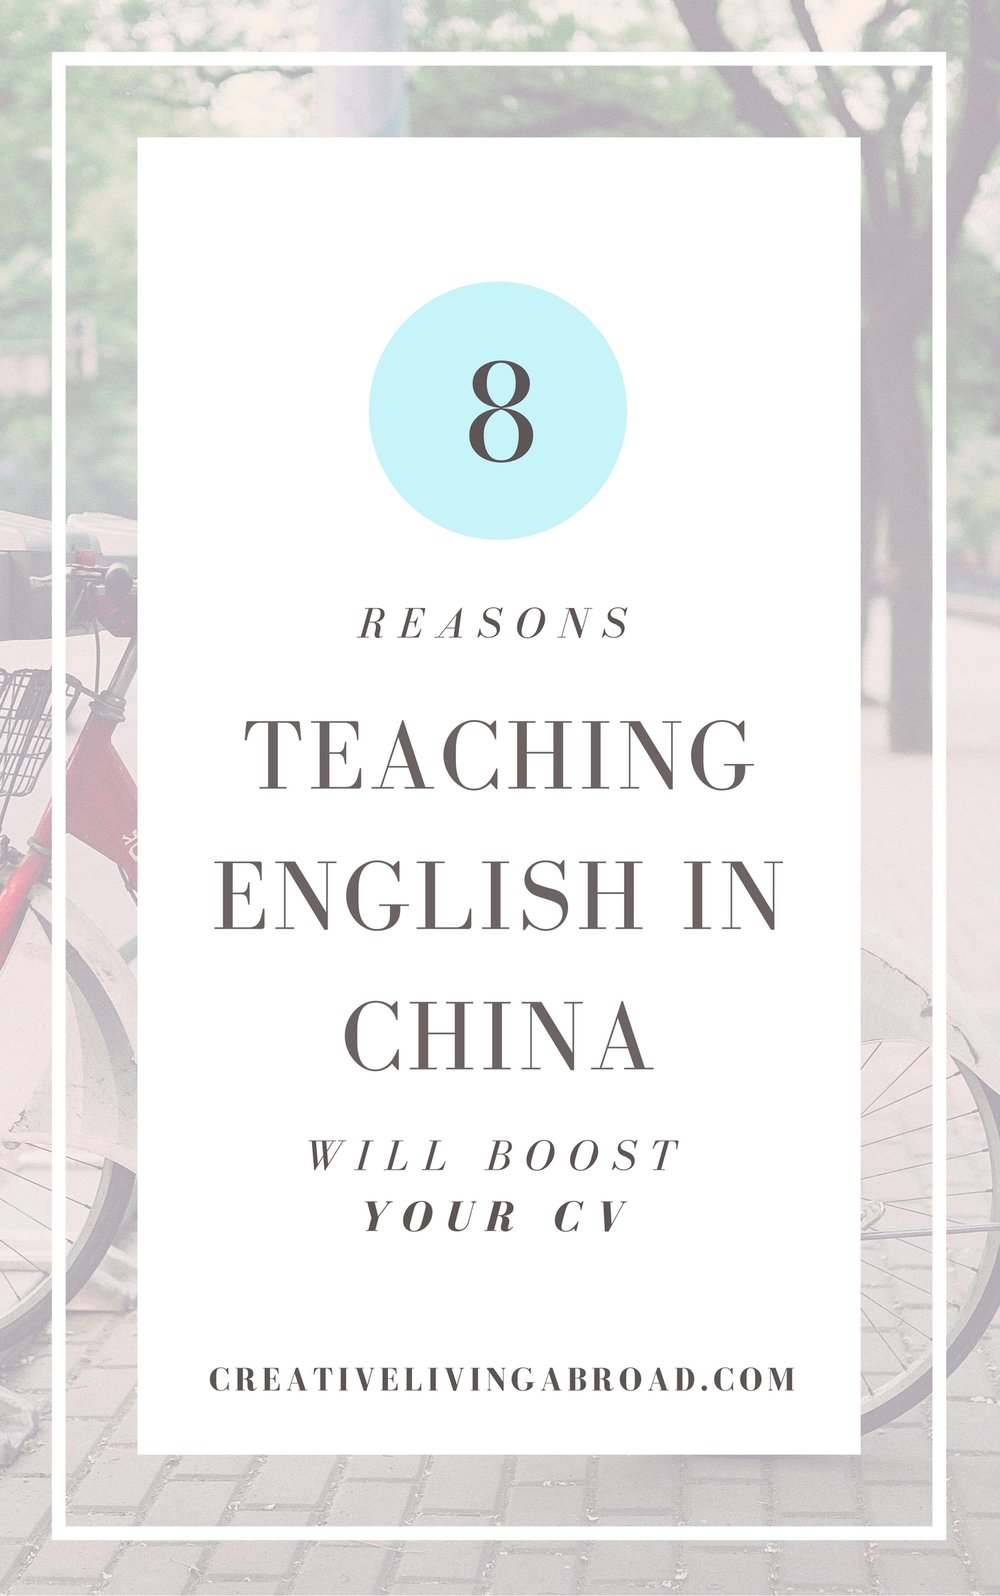 reasons teaching english in china will boost your cv